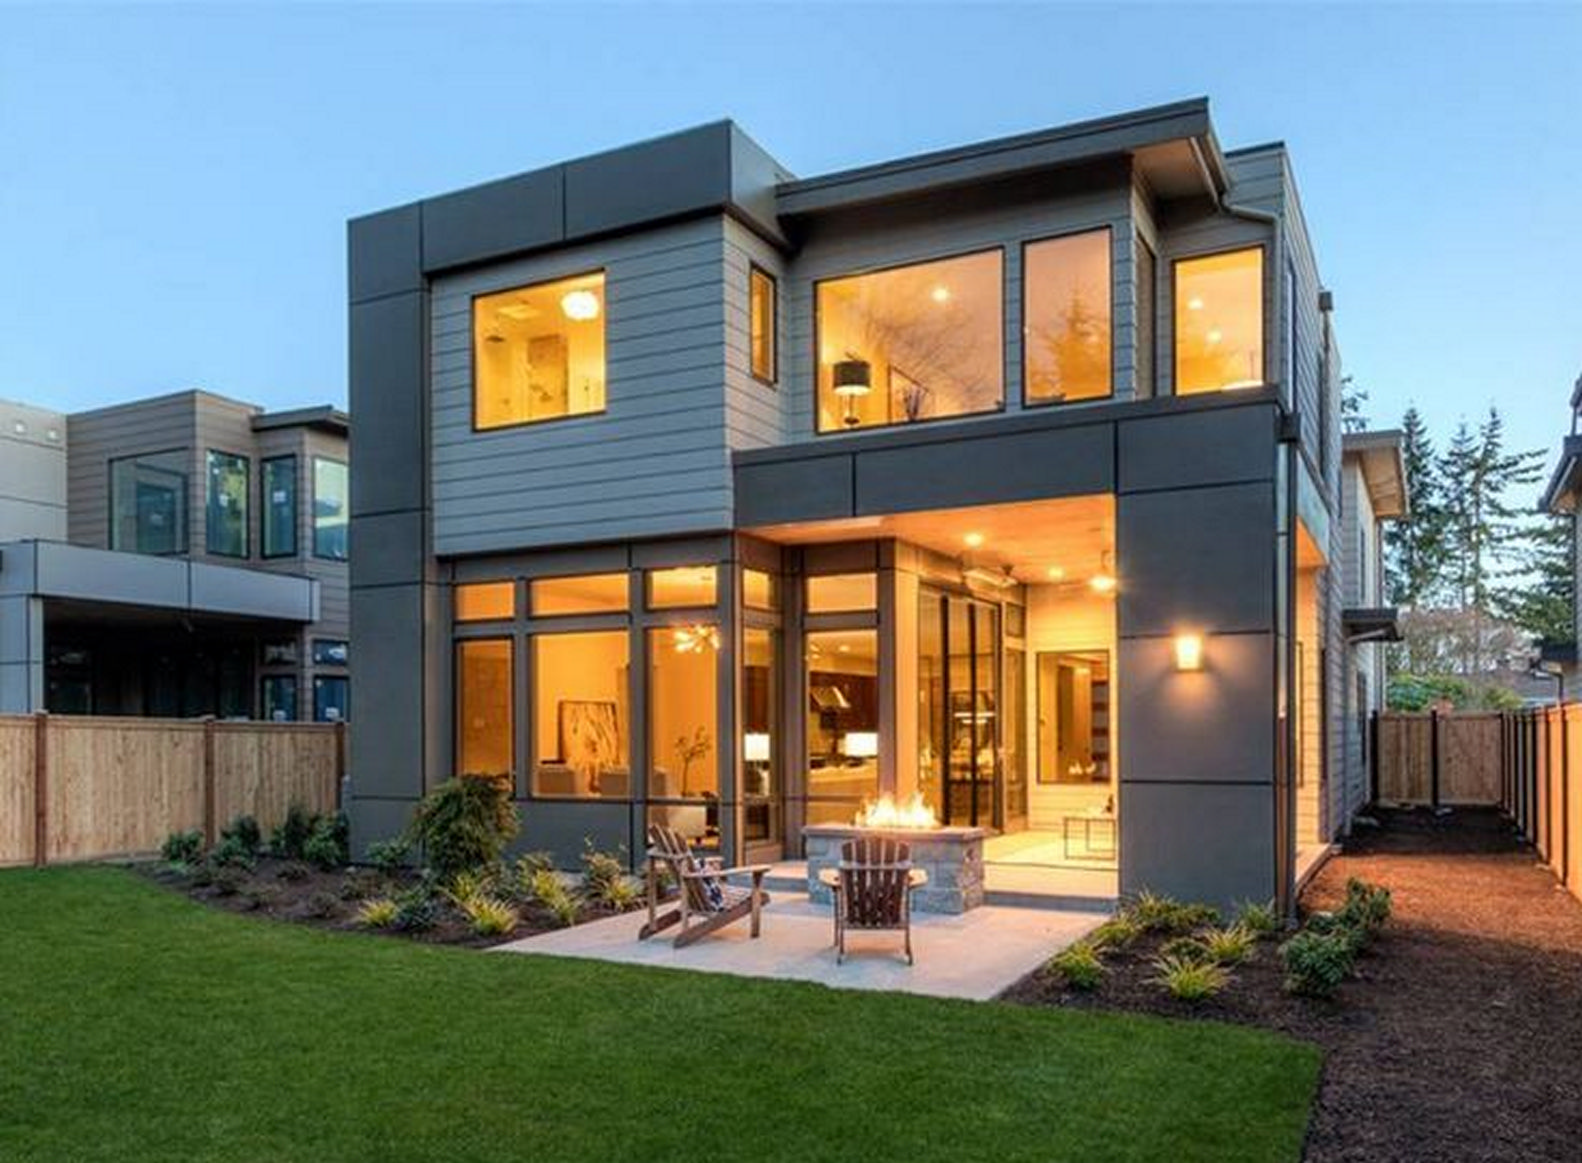 Small modern house design luxury, cozy and artistic living with fashion 10